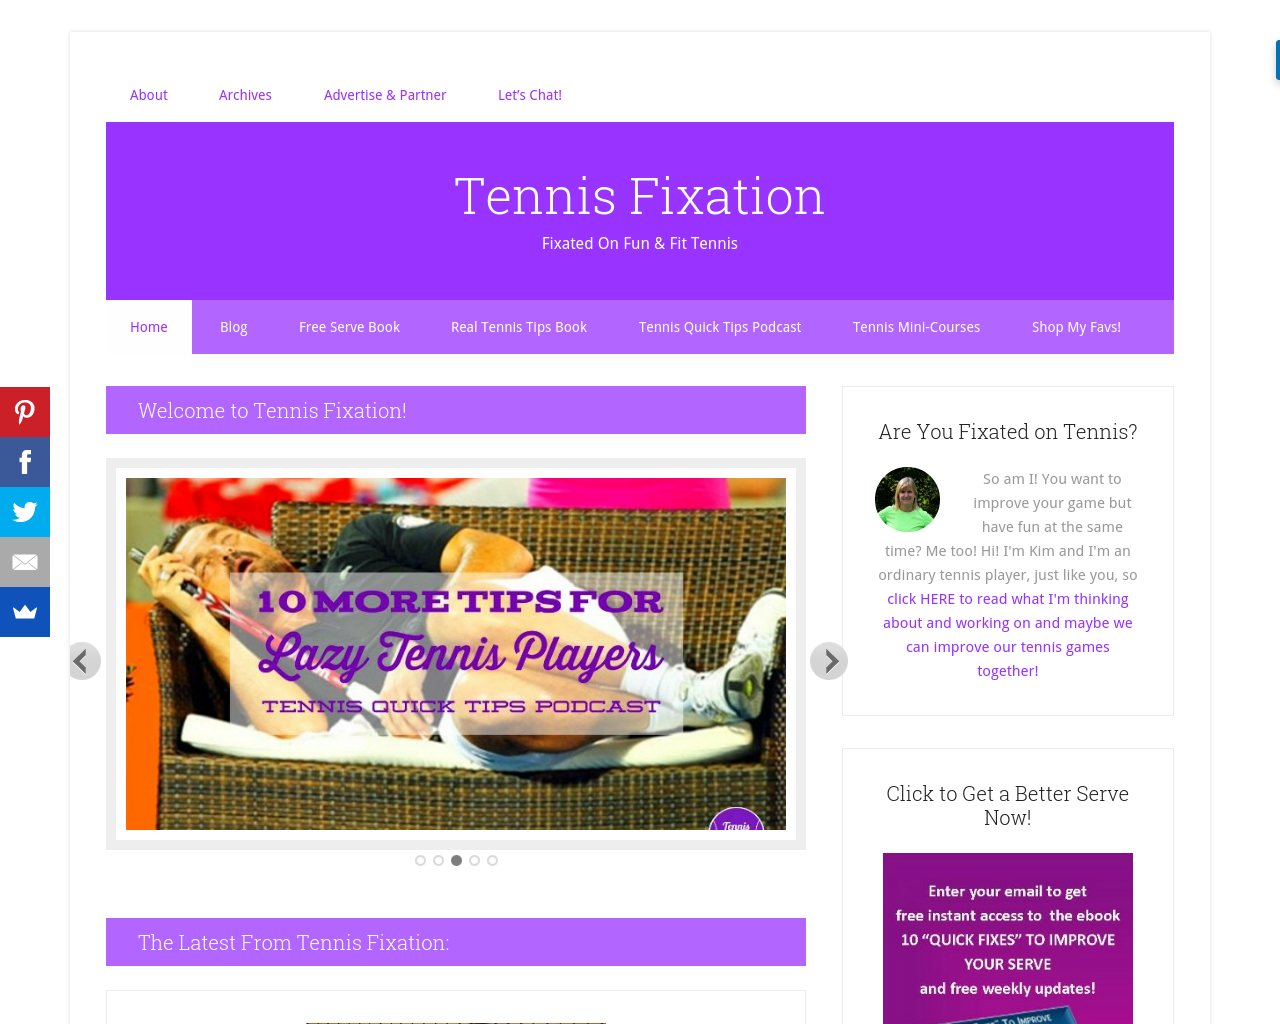 Tennis-Fixation-Advertising-Reviews-Pricing